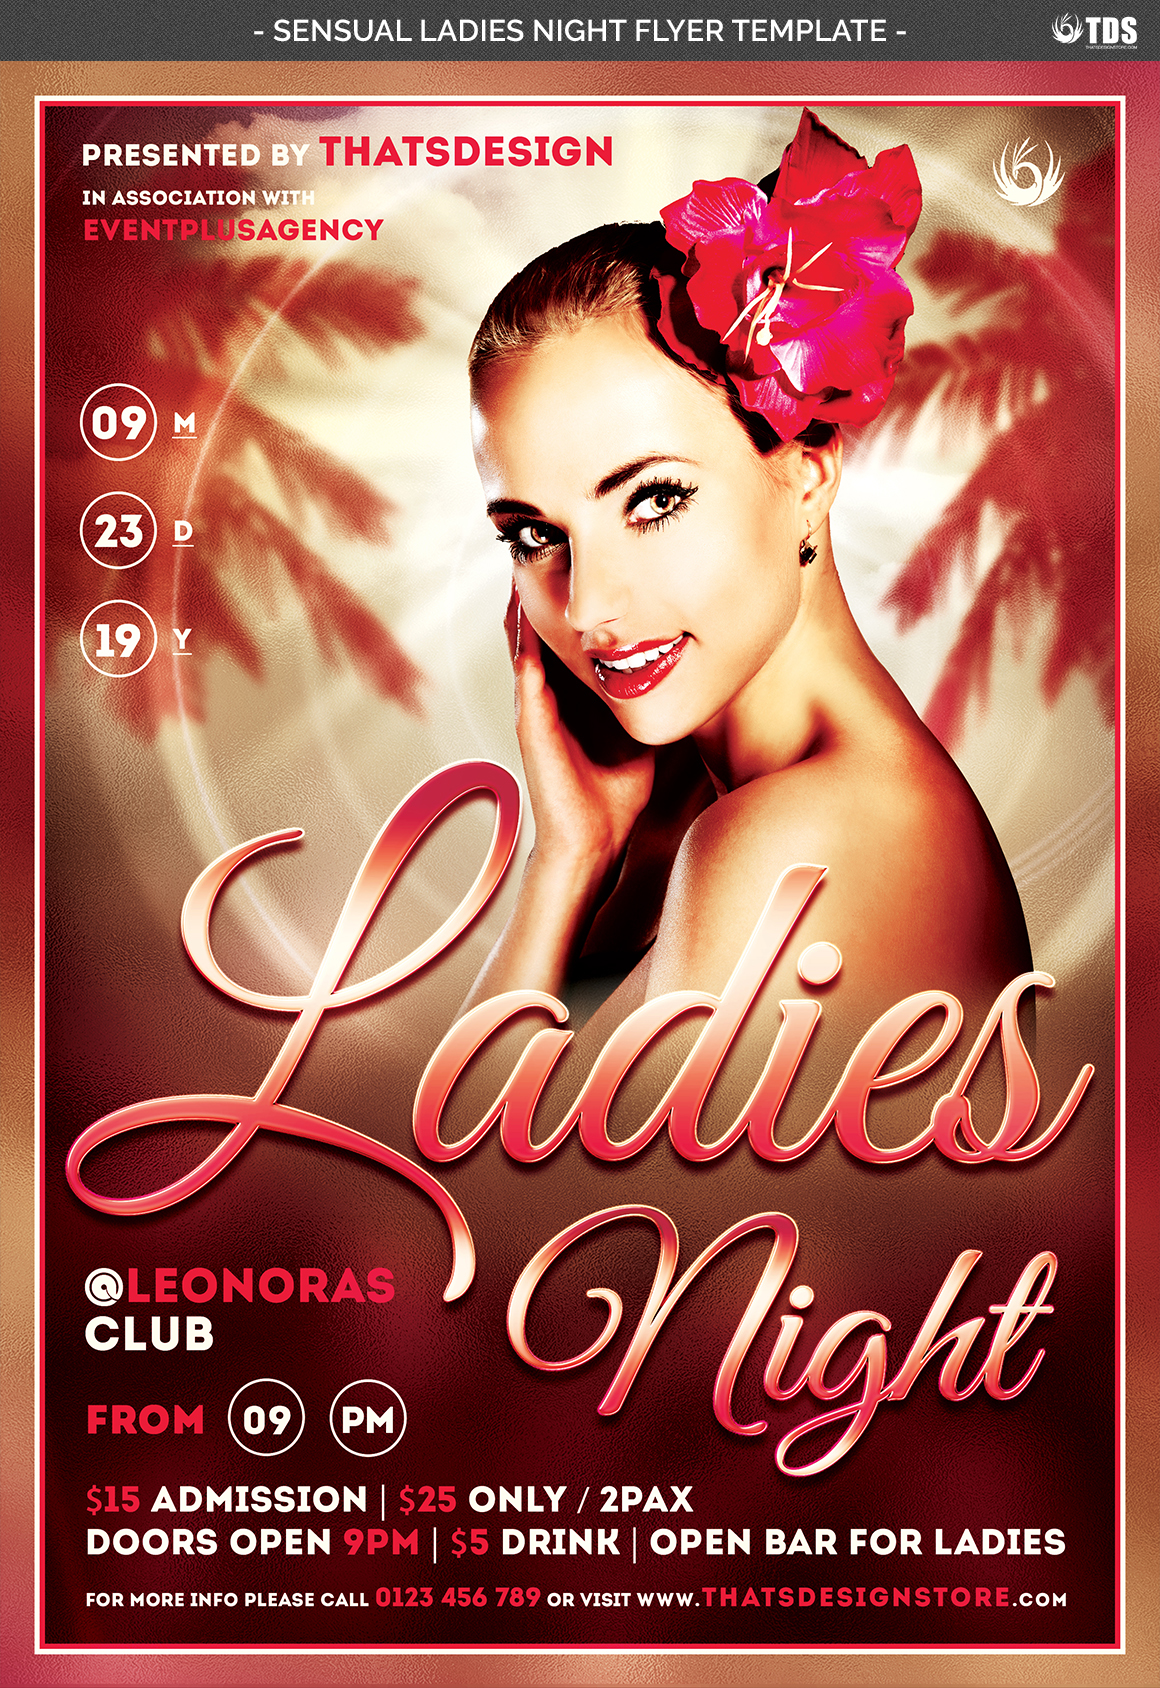 Sensual Ladies Night Flyer Template example image 4